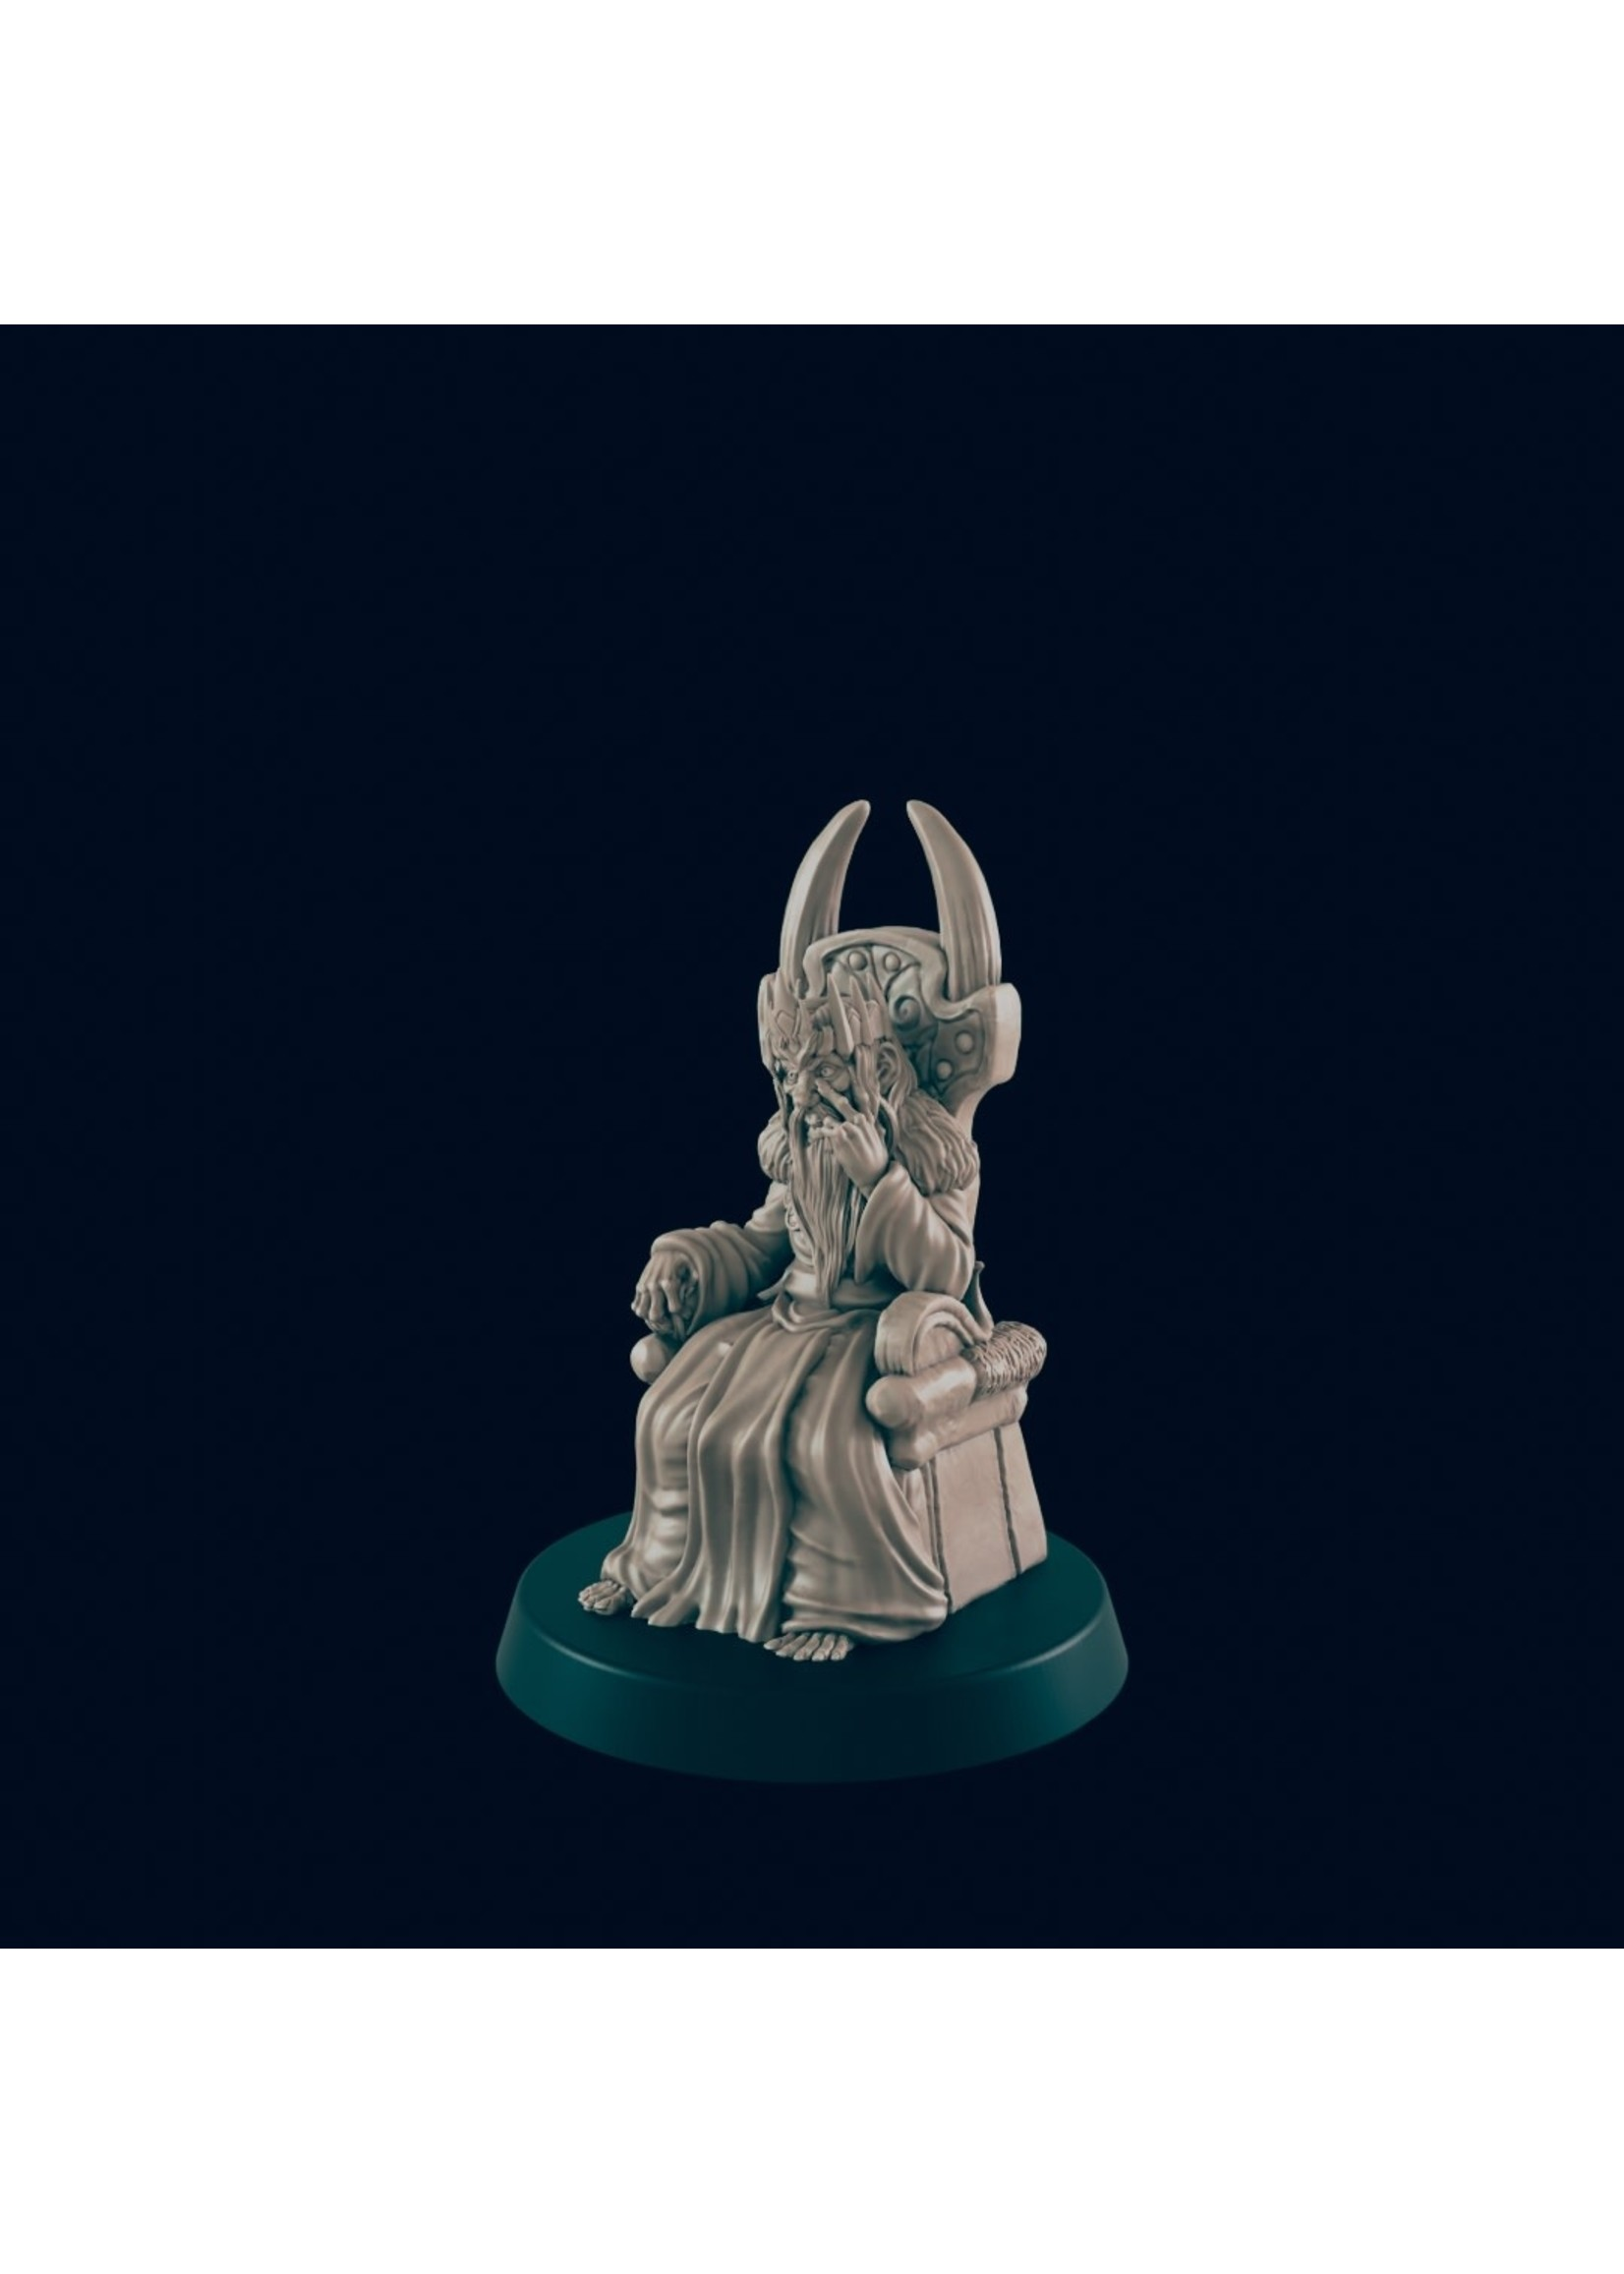 3D Printed Miniature - Mad King in Throne  - Dungeons & Dragons - Beasts and Baddies